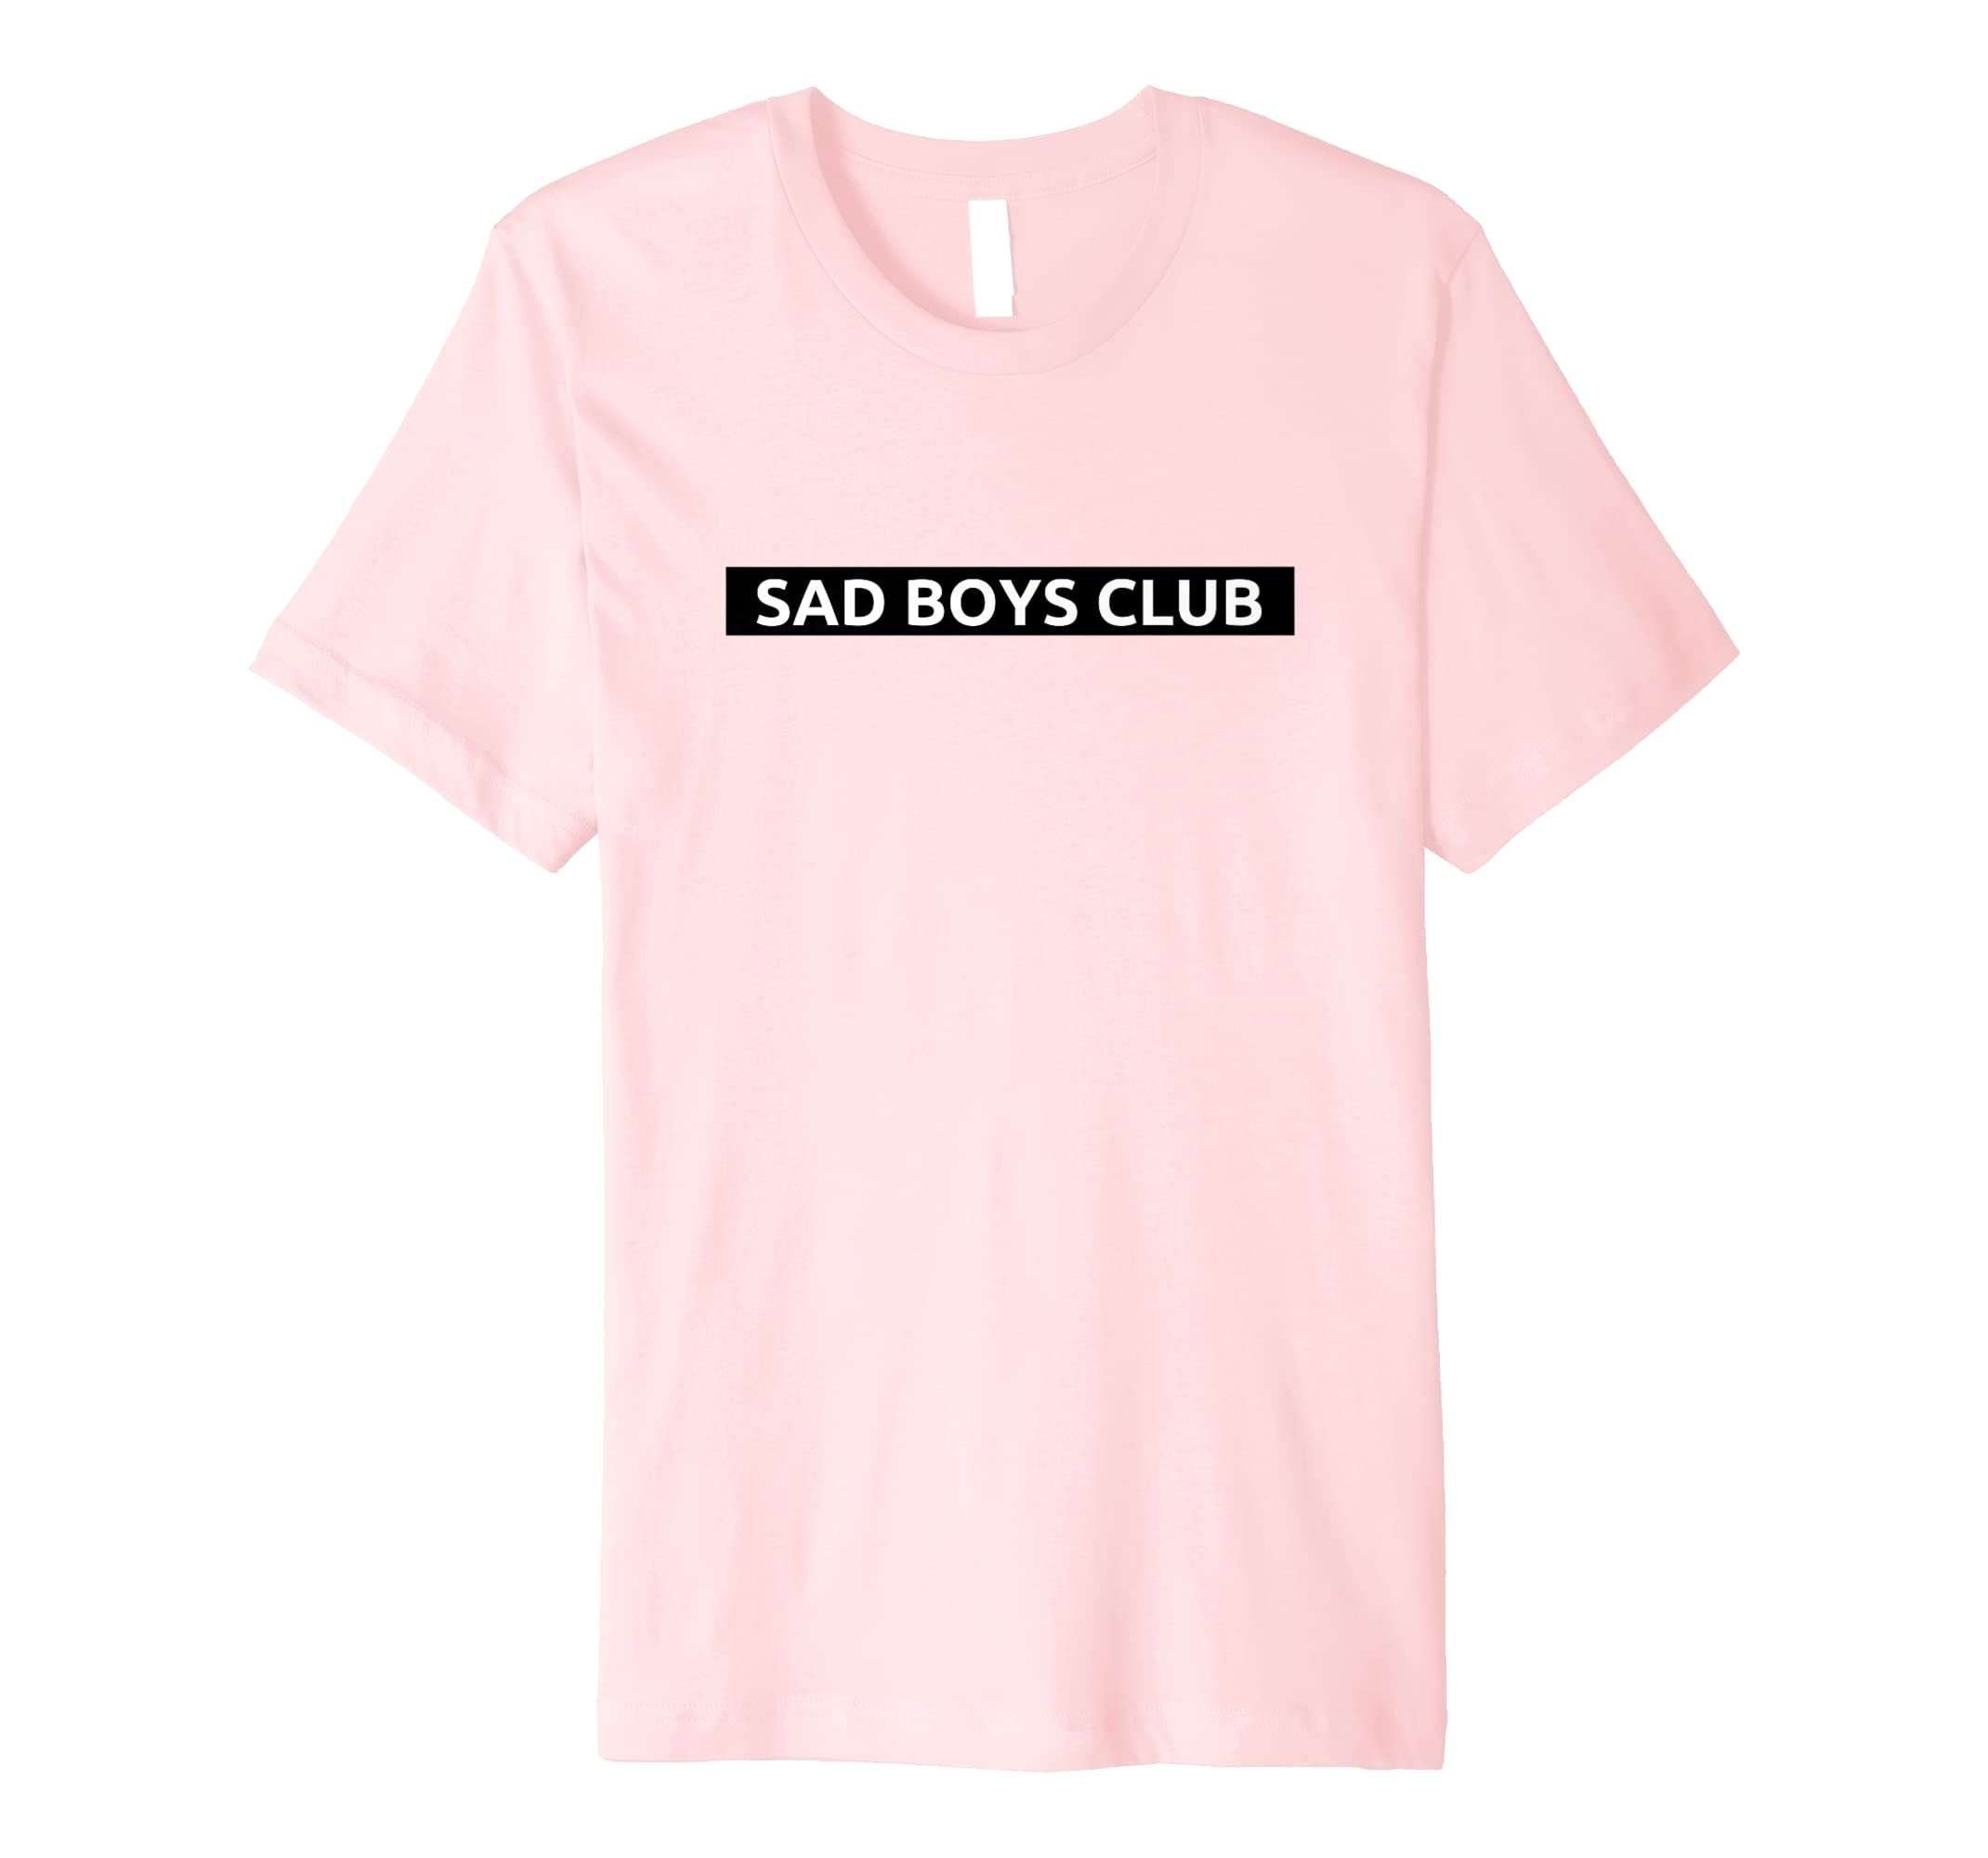 02180ade3 Amazon.com: Vapor Art Sad Boys Club T-shirt: Clothing